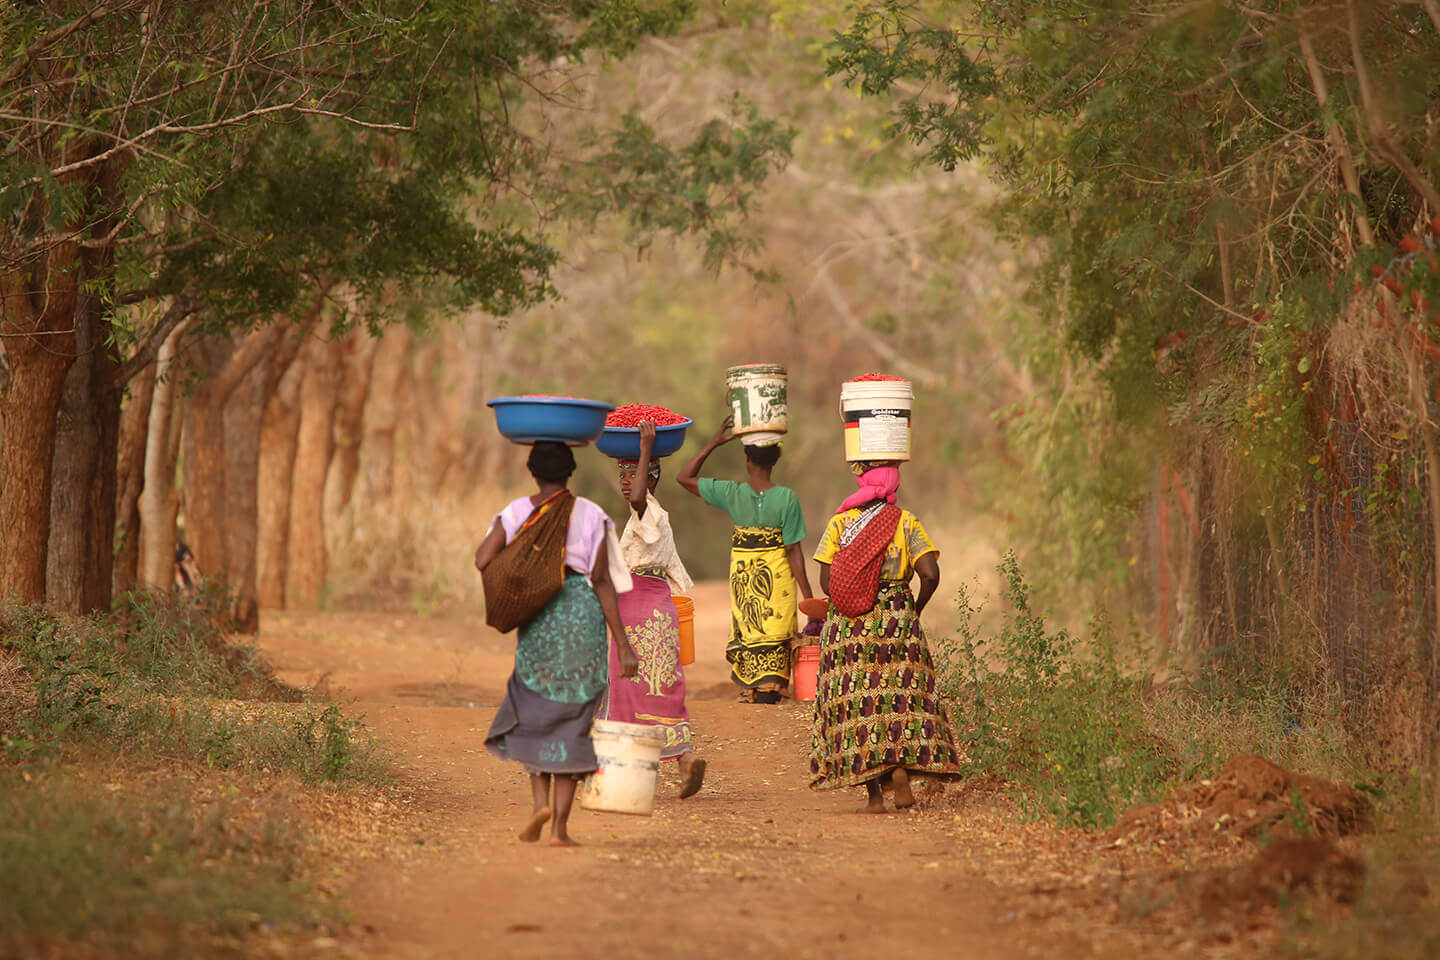 African women carrying chilis